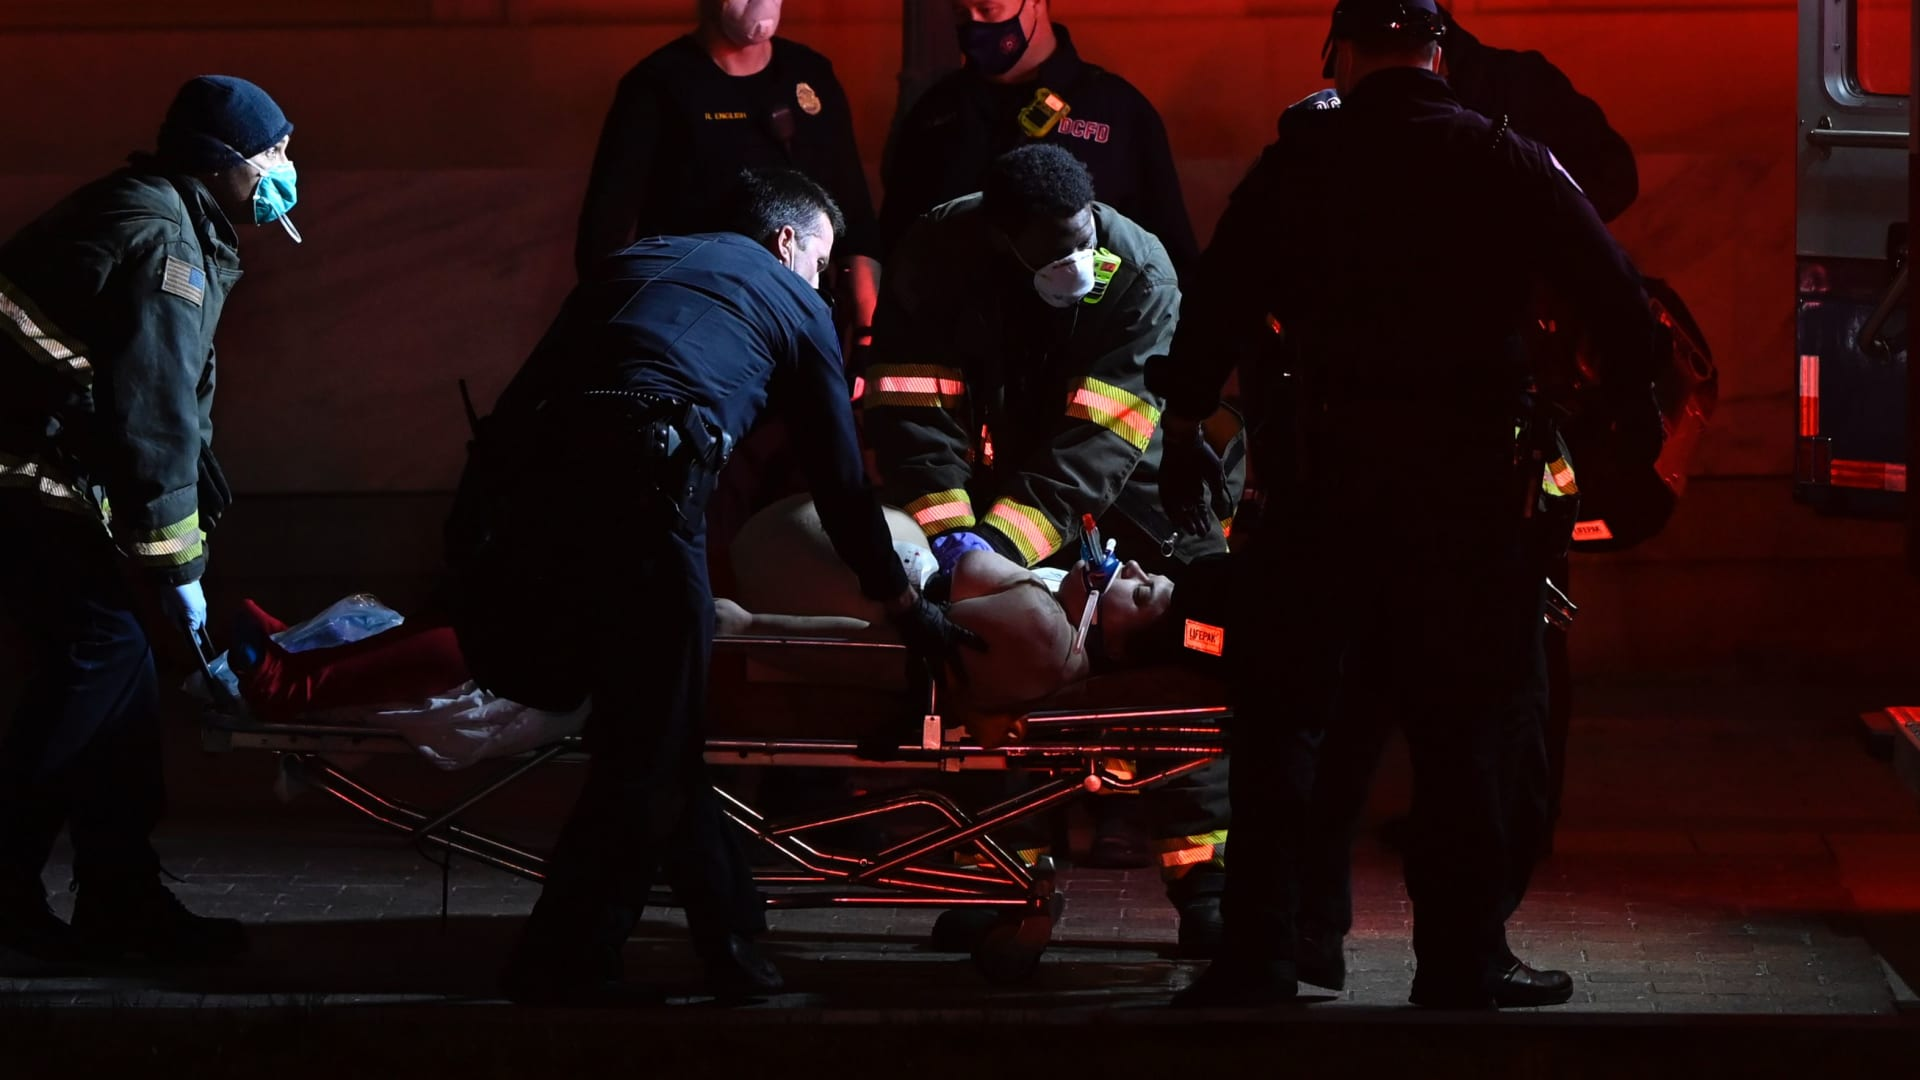 Paramedics perform cardiopulmonary resuscitation on a patient on January 6, 2021, in Washington, DC.